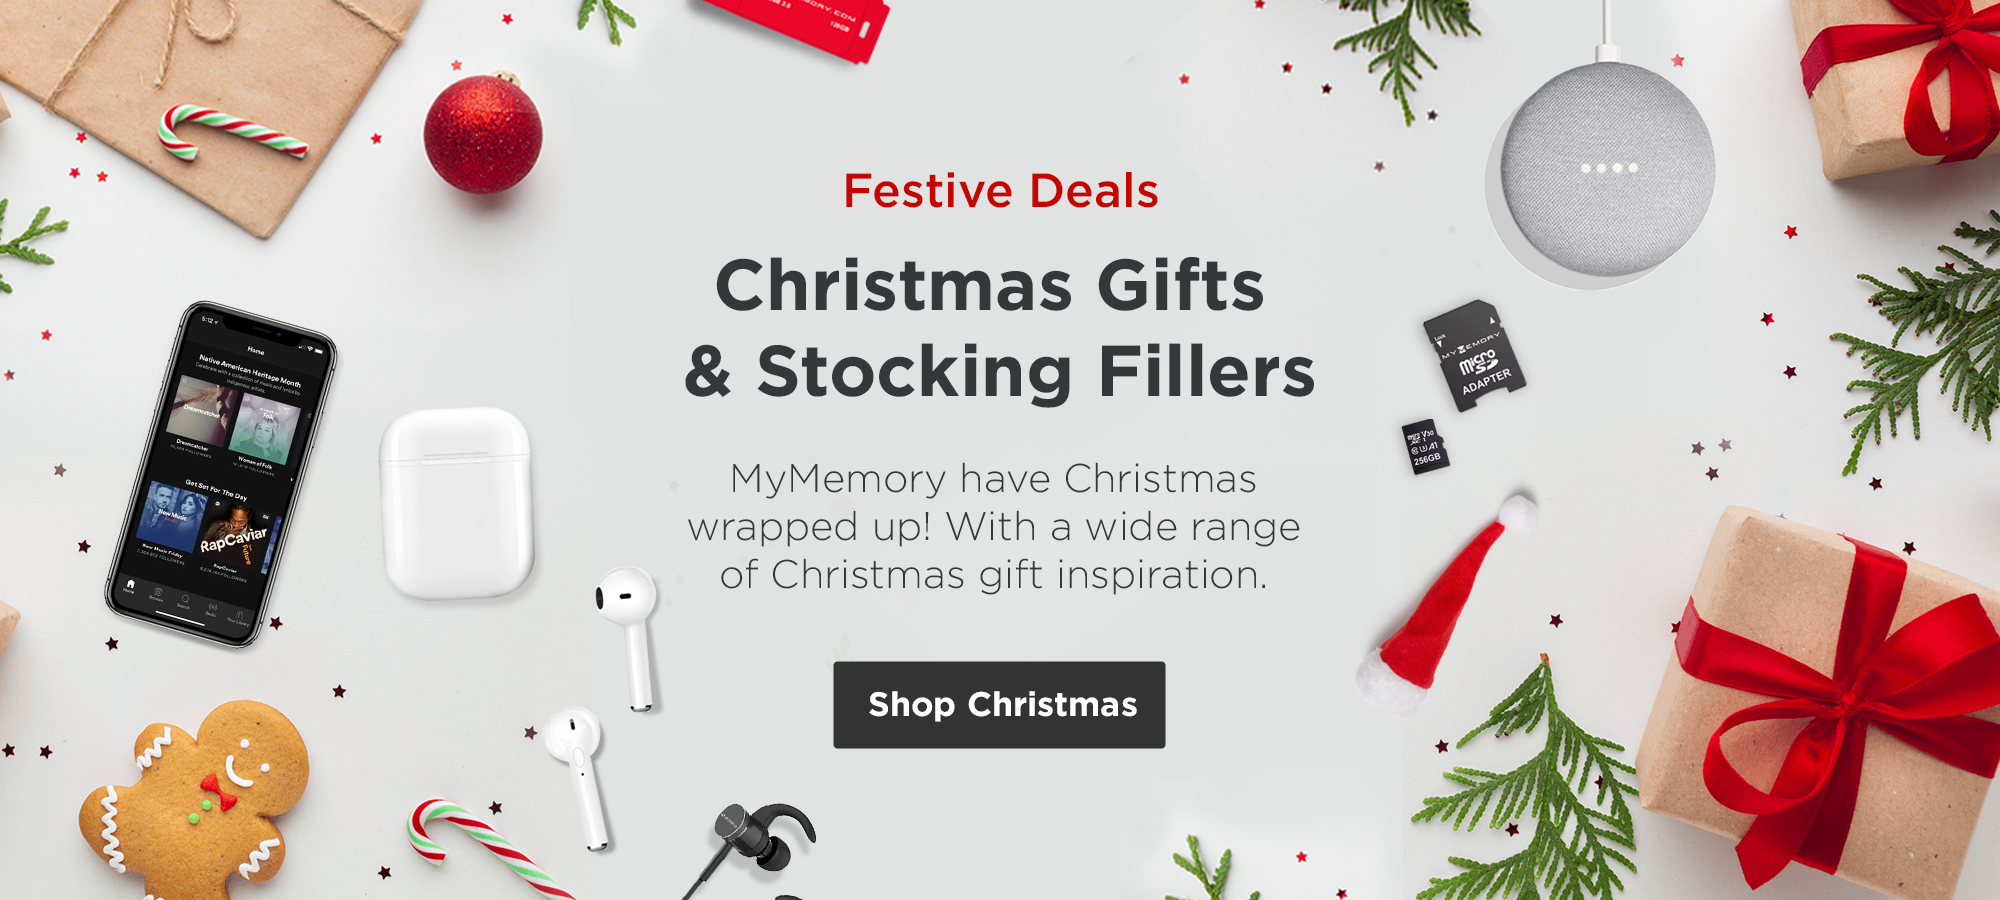 Shop Christmas with MyMemory